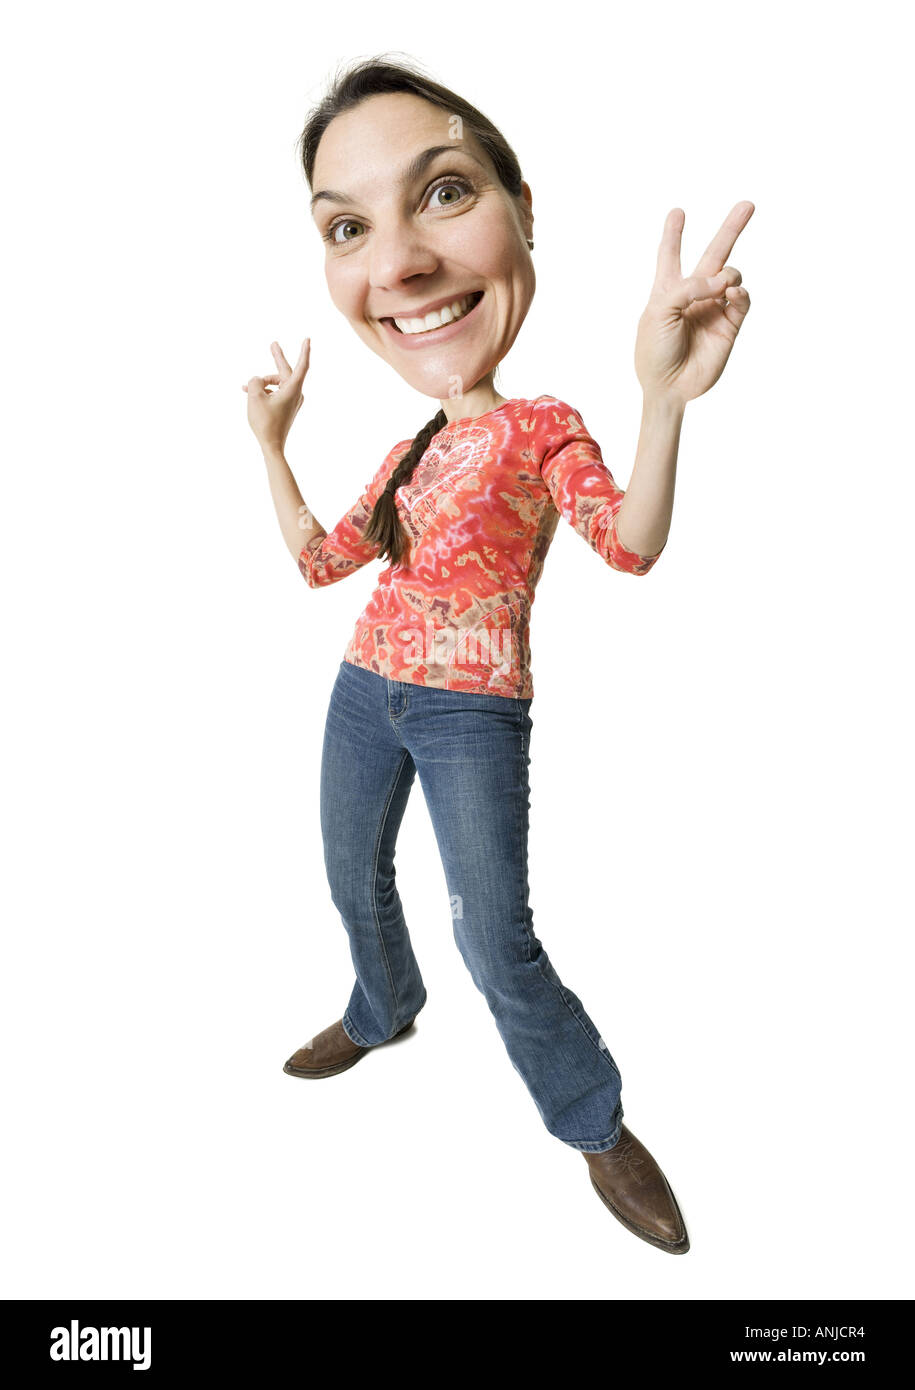 Wide angle caricature of a woman giving peace signs - Stock Image